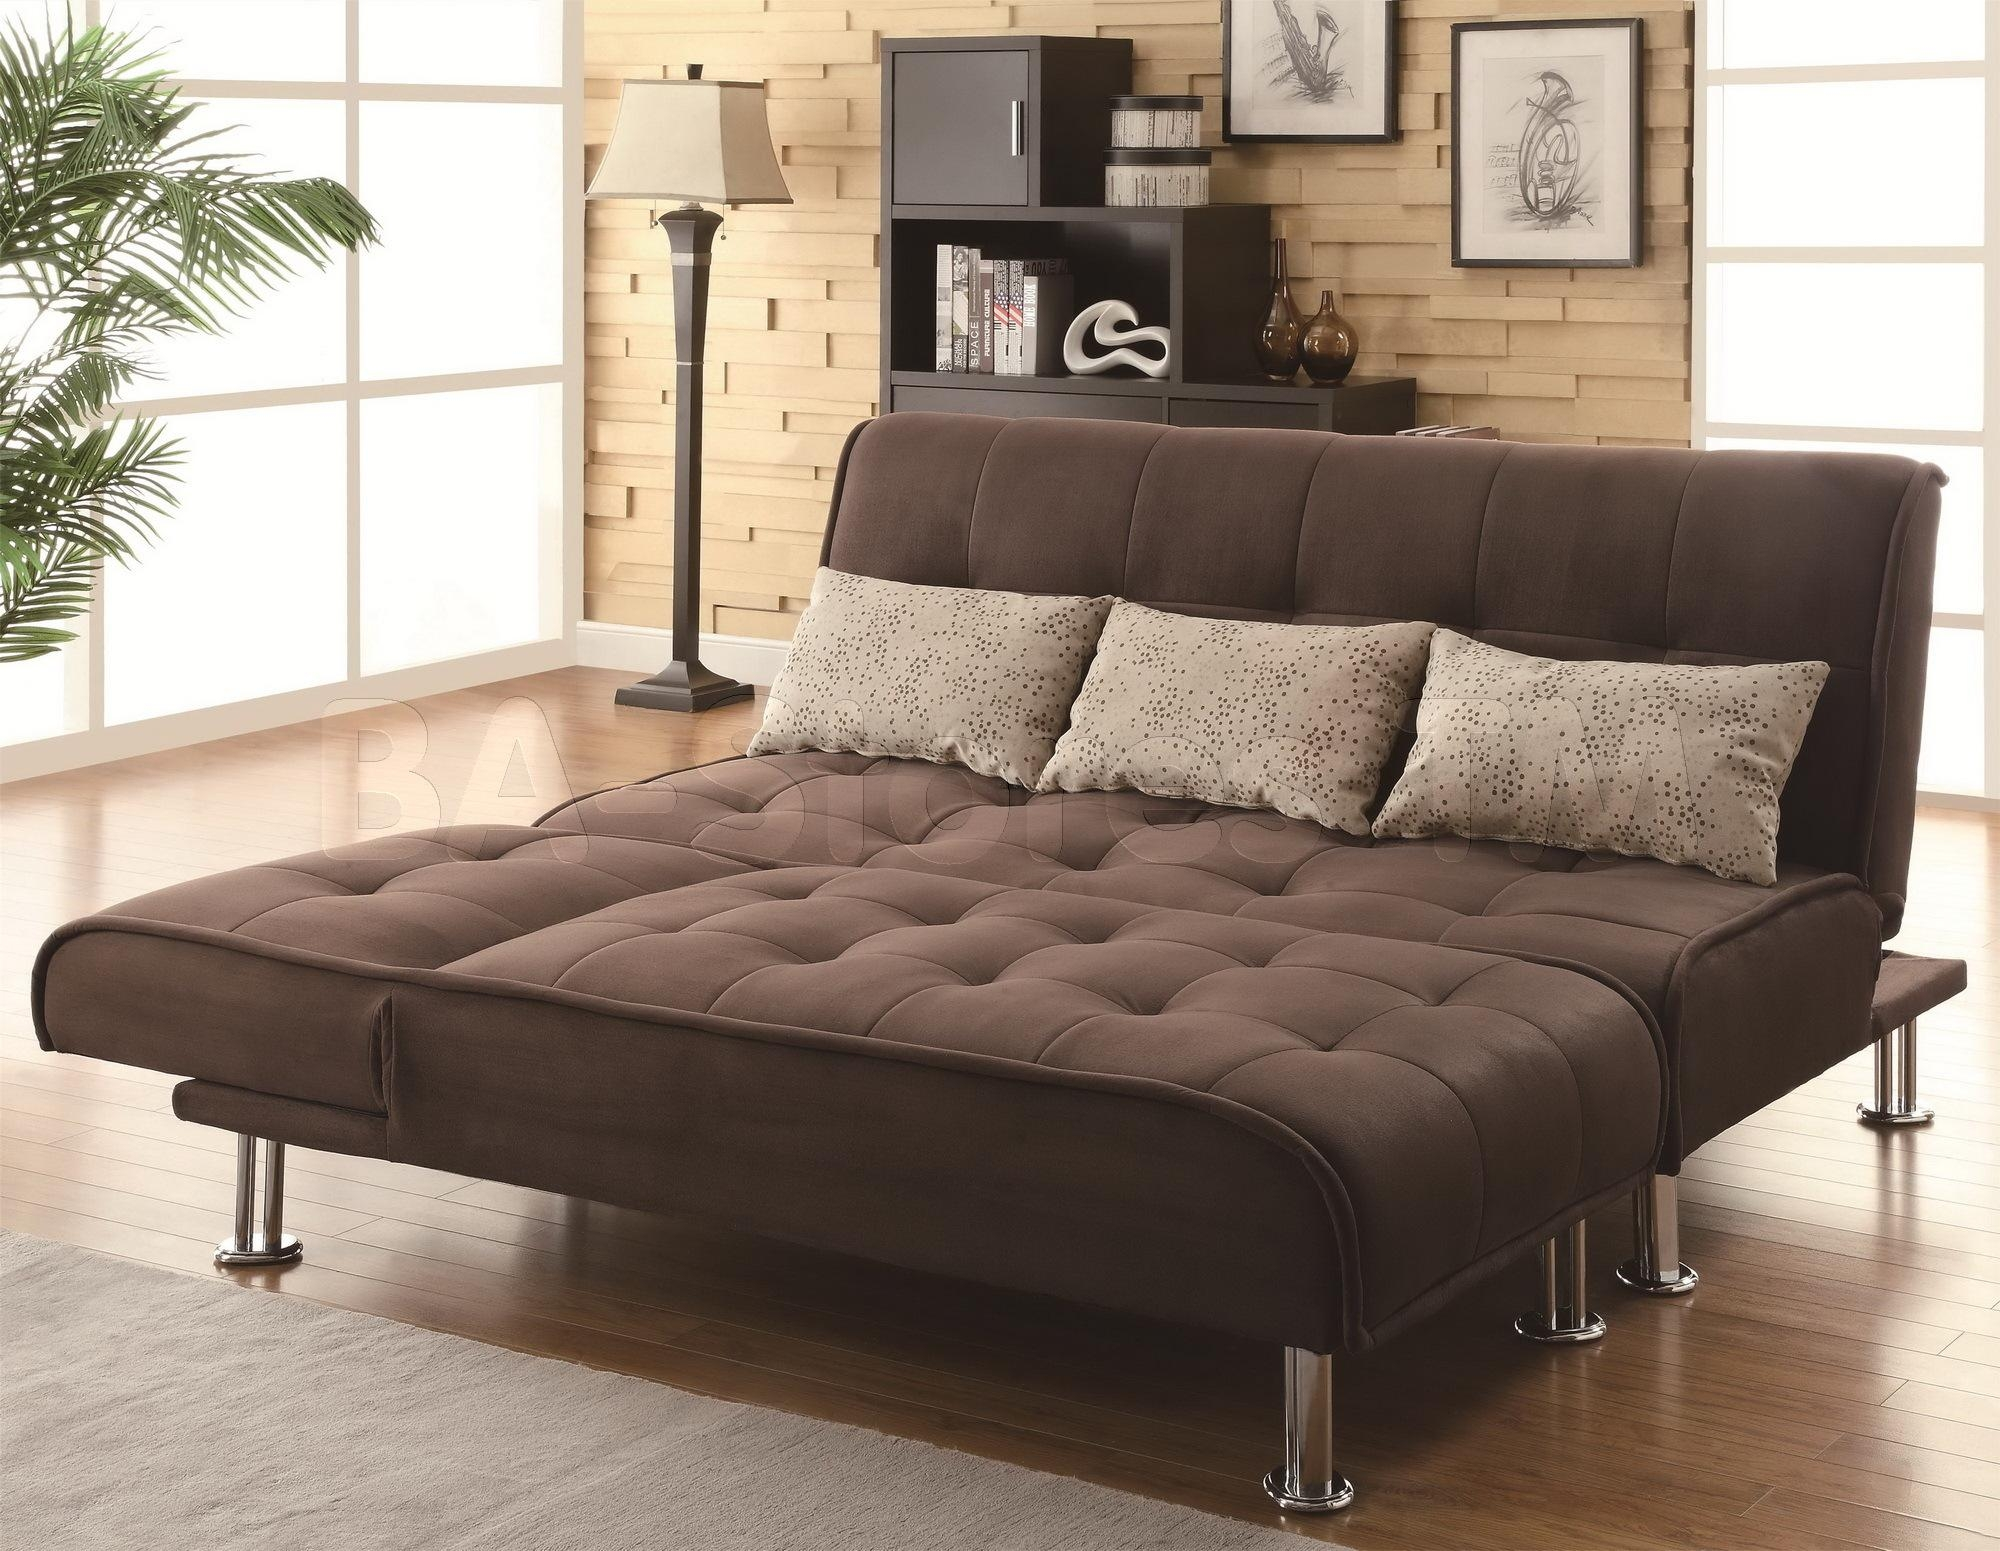 cozy sofa bed sleek designs ideas full size beds explore 7 of 20 photos